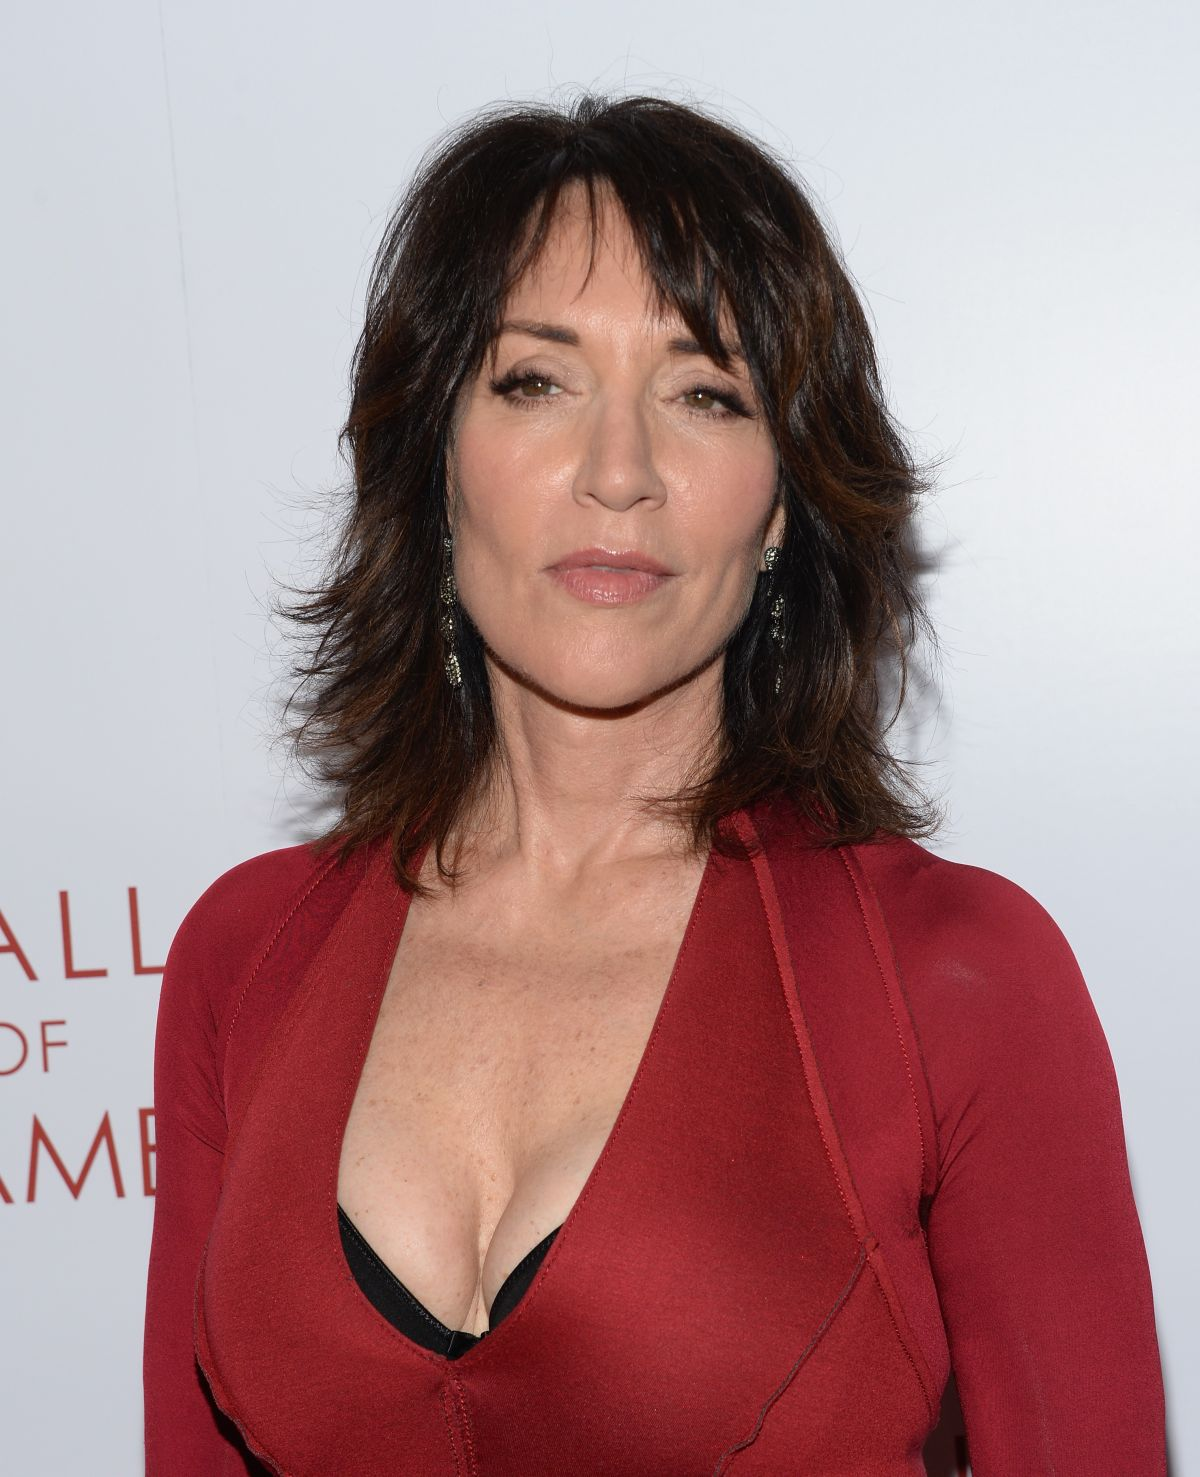 The 64-year old daughter of father Boris Sagal and mother Sara Zwilling, 175 cm tall Katey Sagal in 2018 photo